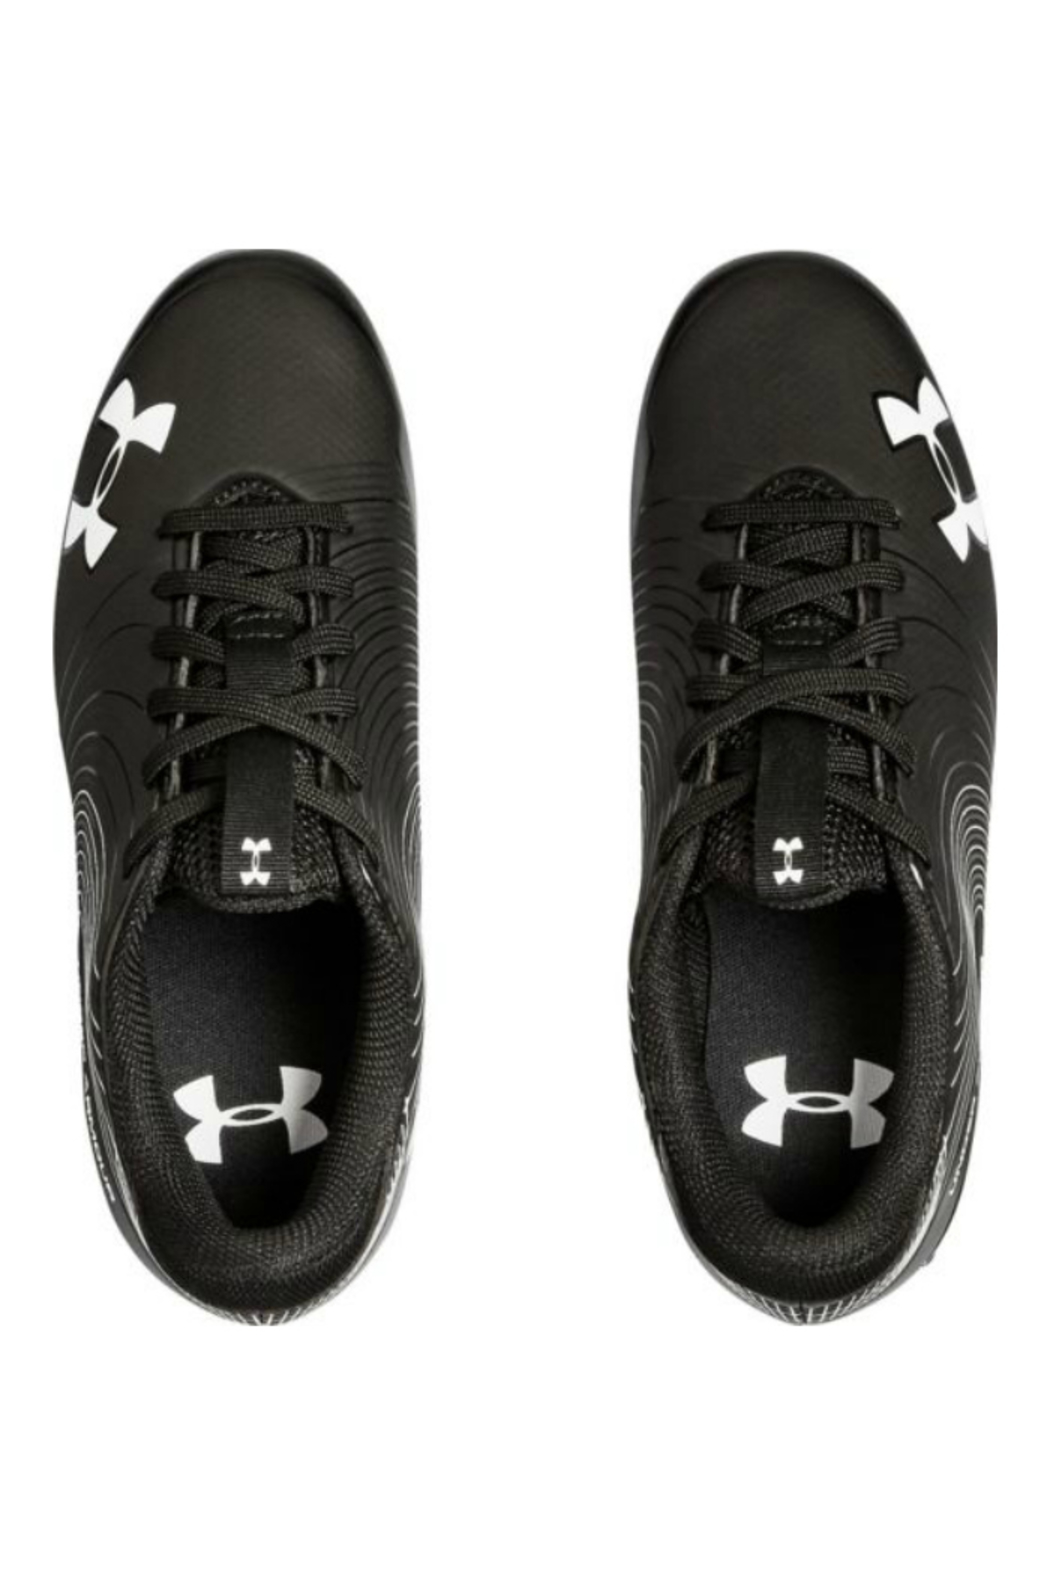 Under Armour SPEED PHANTOM JR. - Back Cropped Image